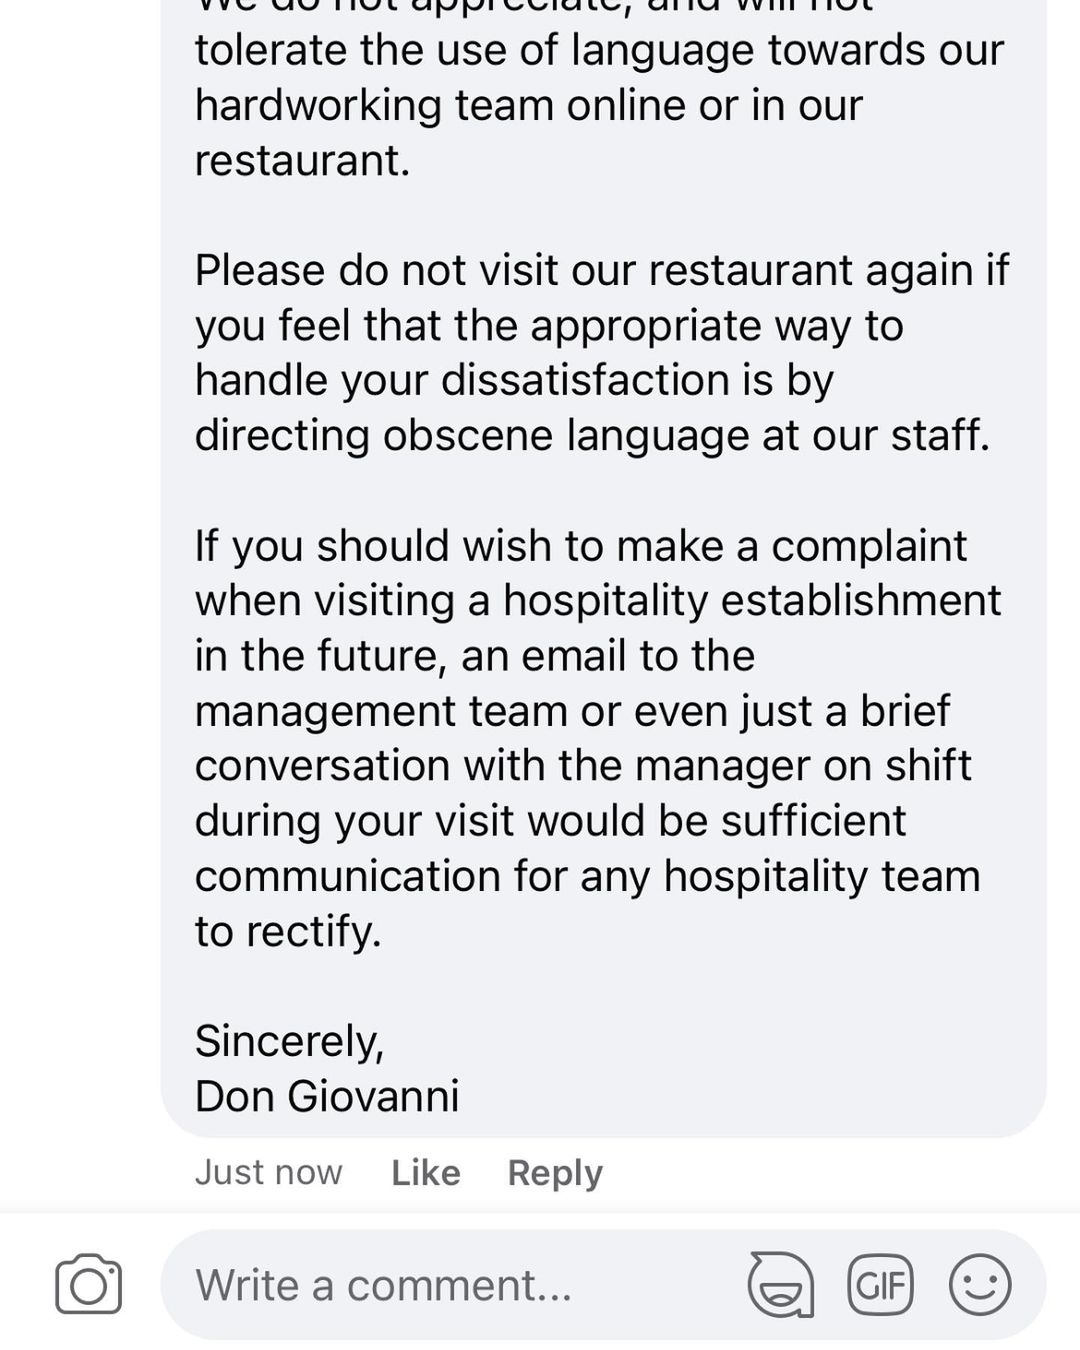 Don Giovanni calls for kindness after customer leaves 'vulgar' Facebook review, The Manc